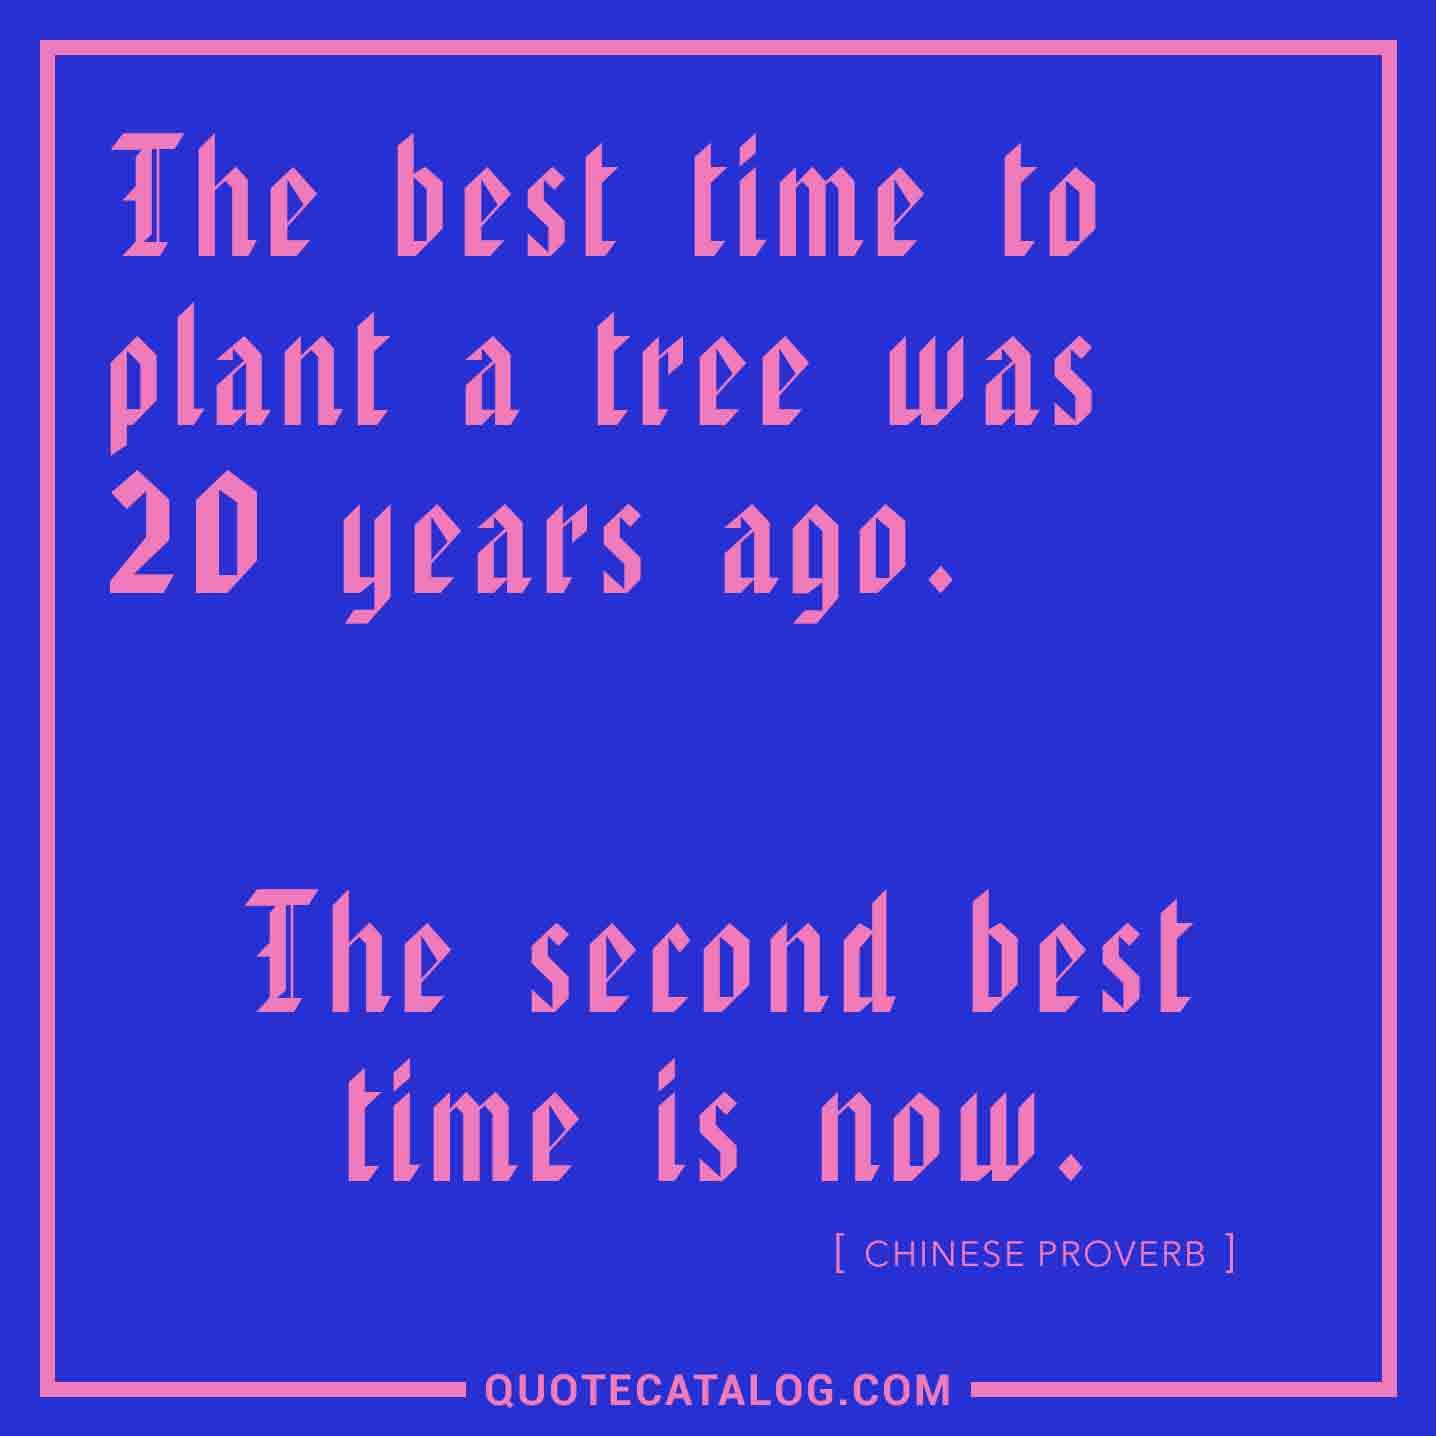 Chinese Proverb Quote The Best Time To Plant A Tree Was 20 Yea